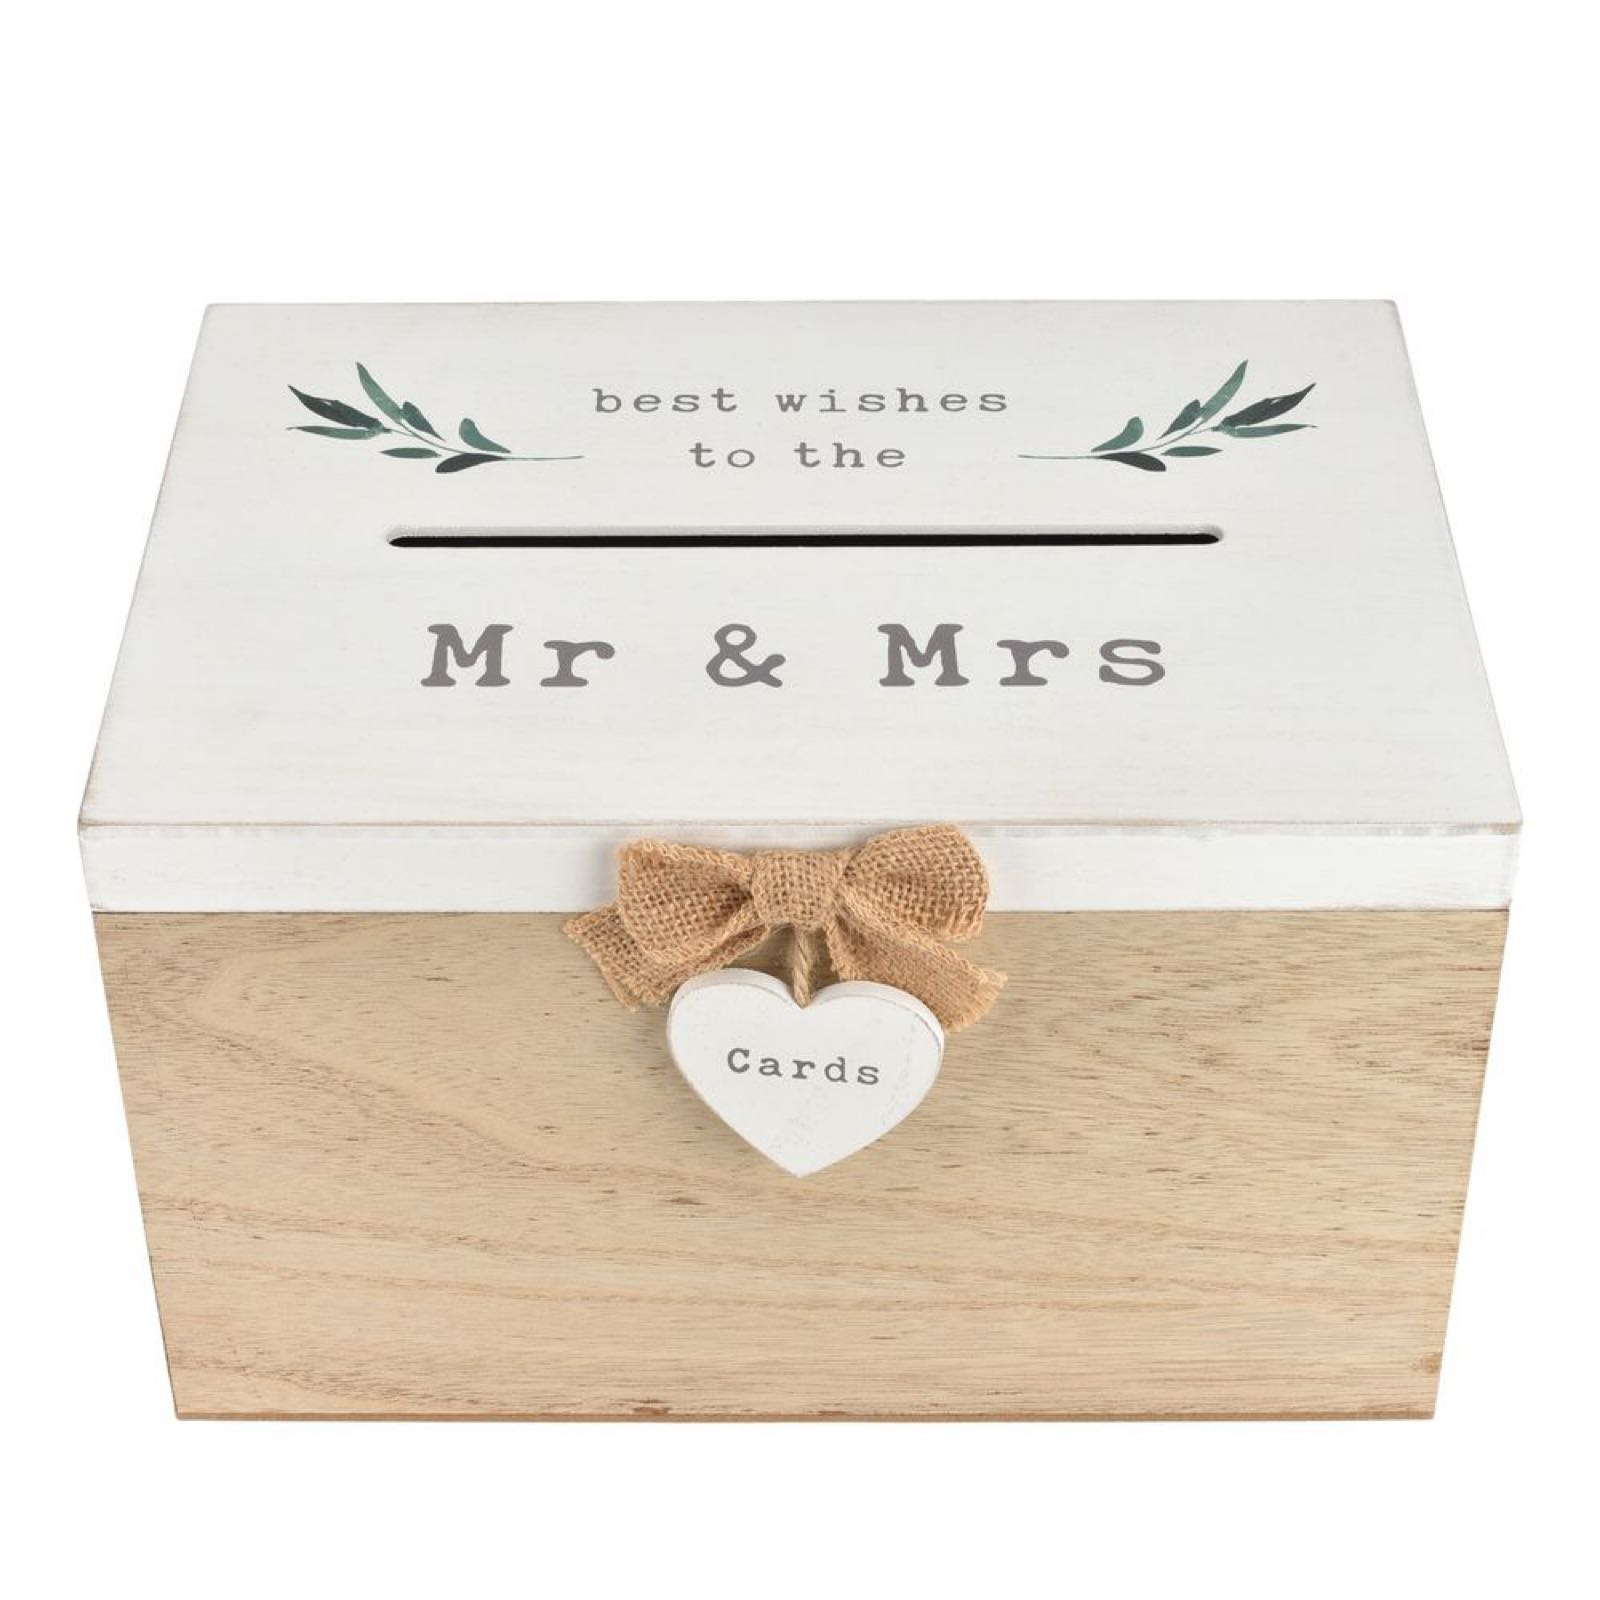 Best Wishes to the Mr & Mrs Card Box